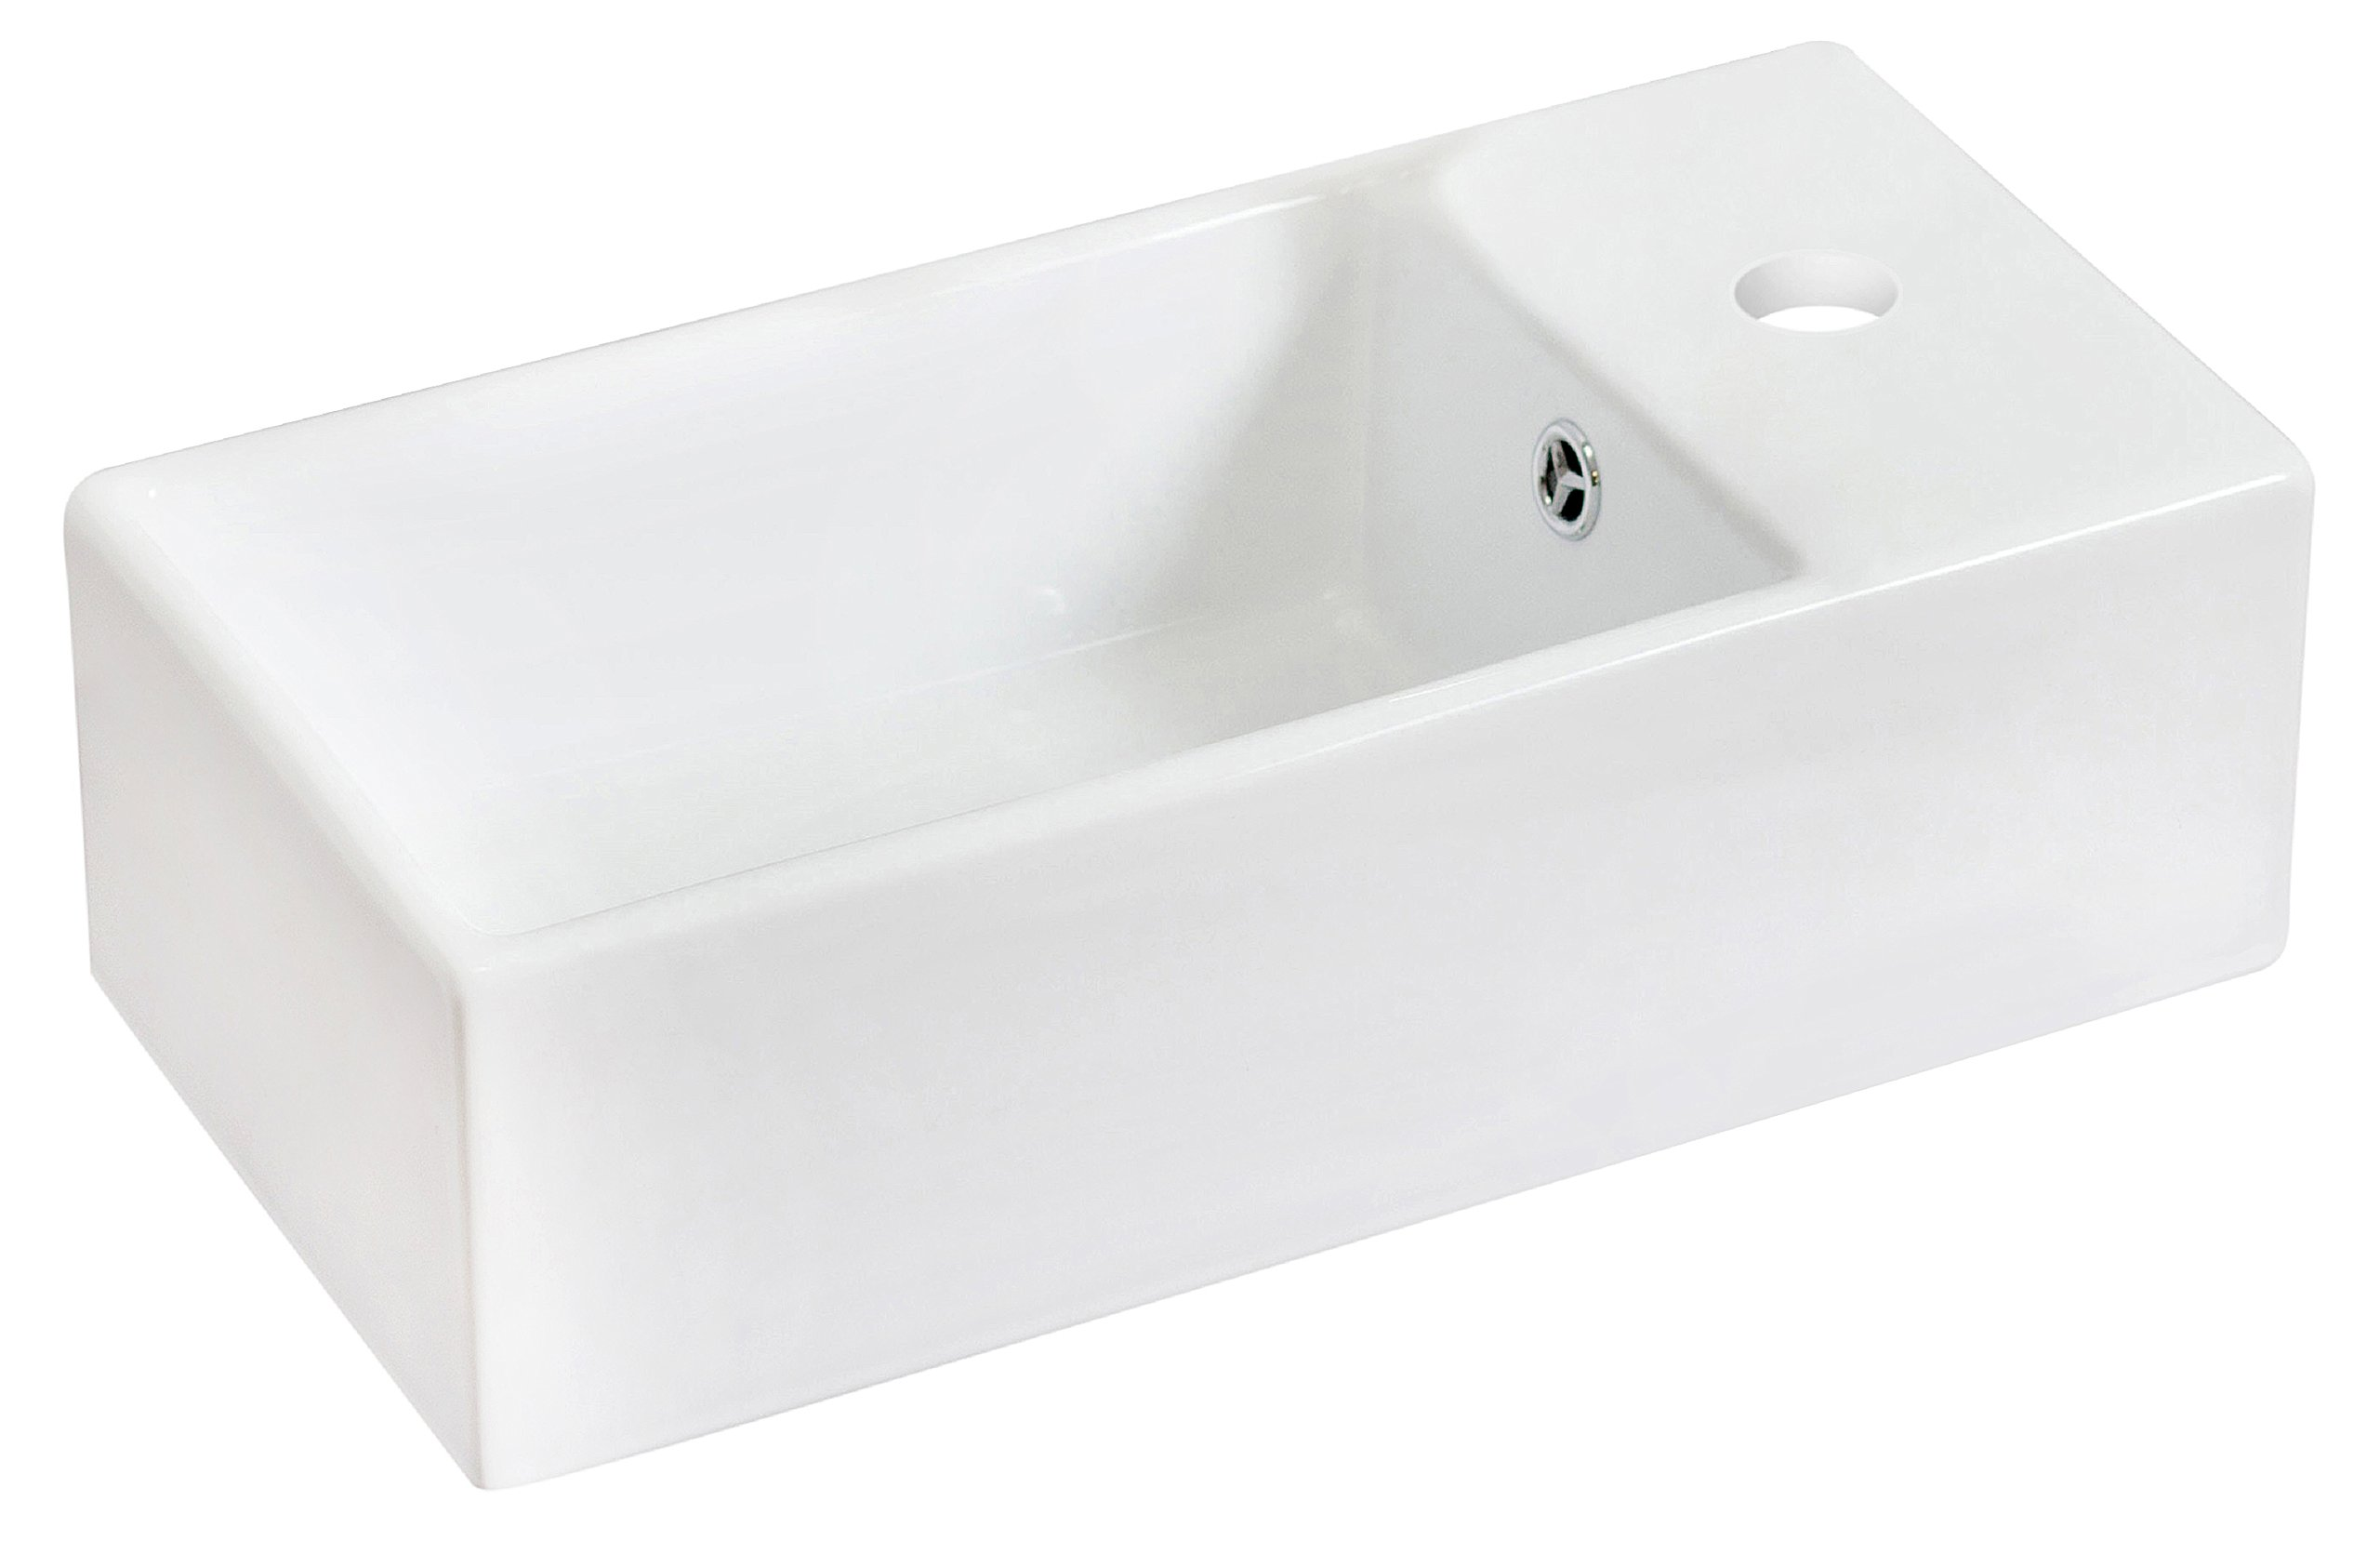 American Imaginations AI-13-582 Above Counter Rectangle Vessel for Single Hole Faucet, 18-Inch x 10-Inch, White by American Imaginations